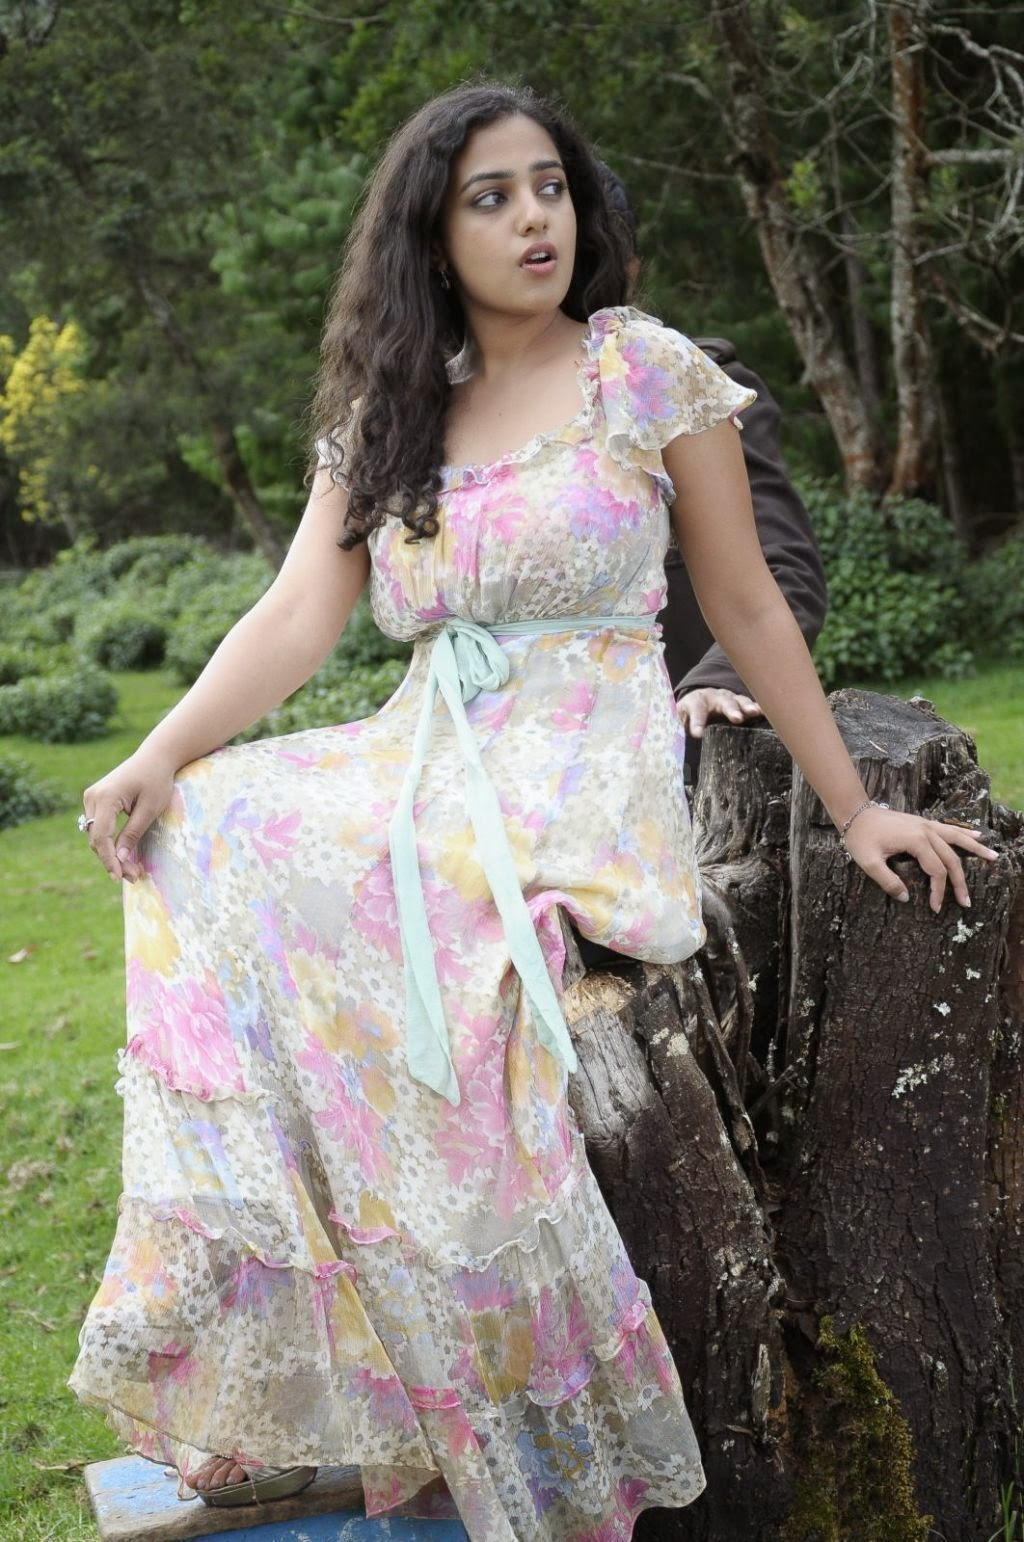 Nithya Menon Spicy Indian Film Actress And Playback Singer Very Beautiful And Hot Sexy Stills Wallpapers